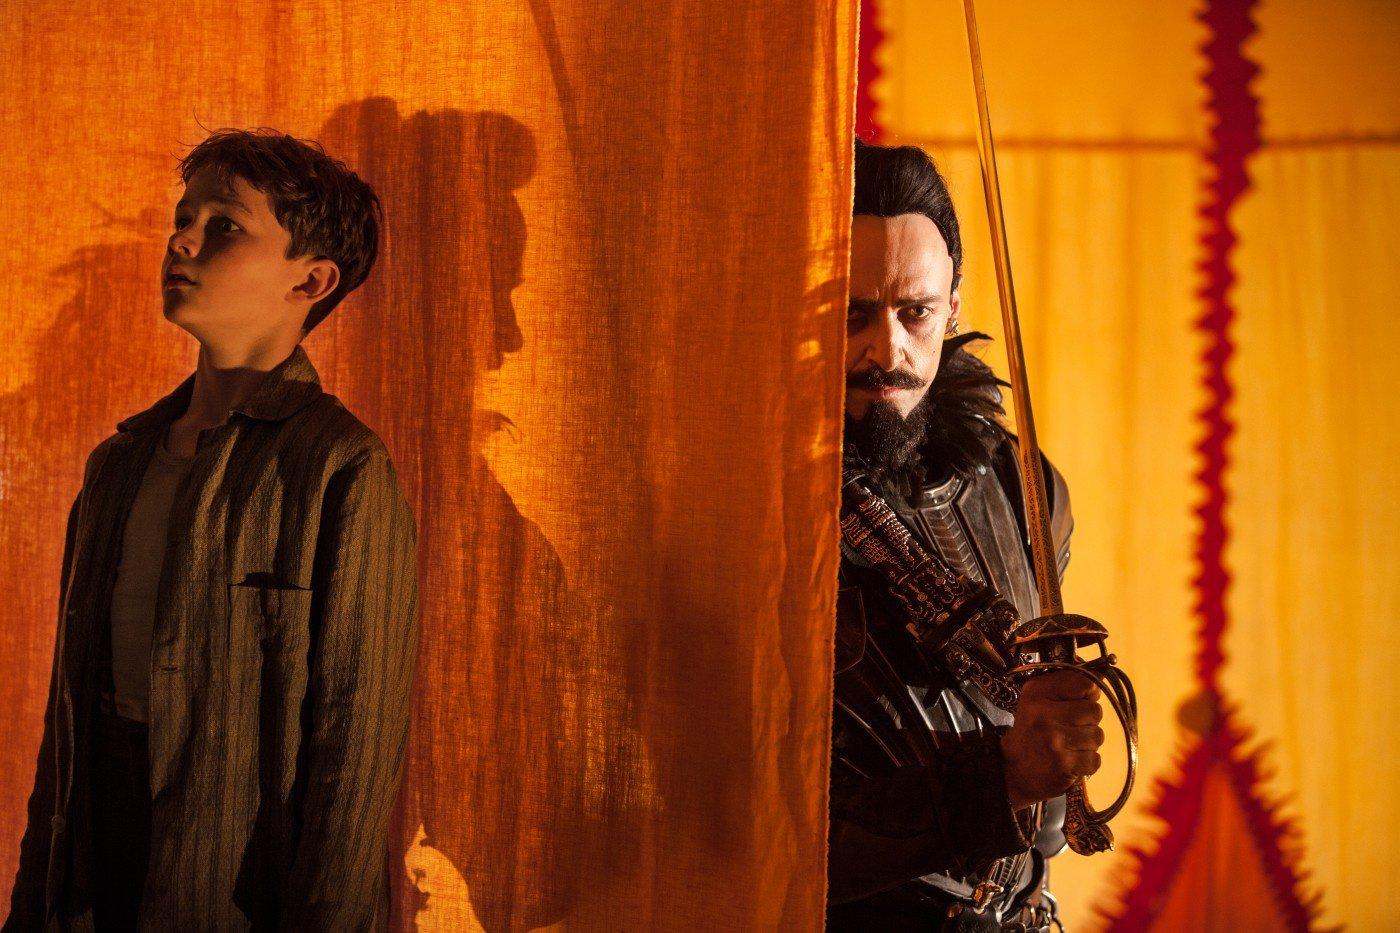 an analysis of the issues and flaws in pan a 2015 film by joe wright The reviewers who said his is the best austen adaption are spot on with their analysis impact is joe wright's 2005 their flaws add humor to the film.